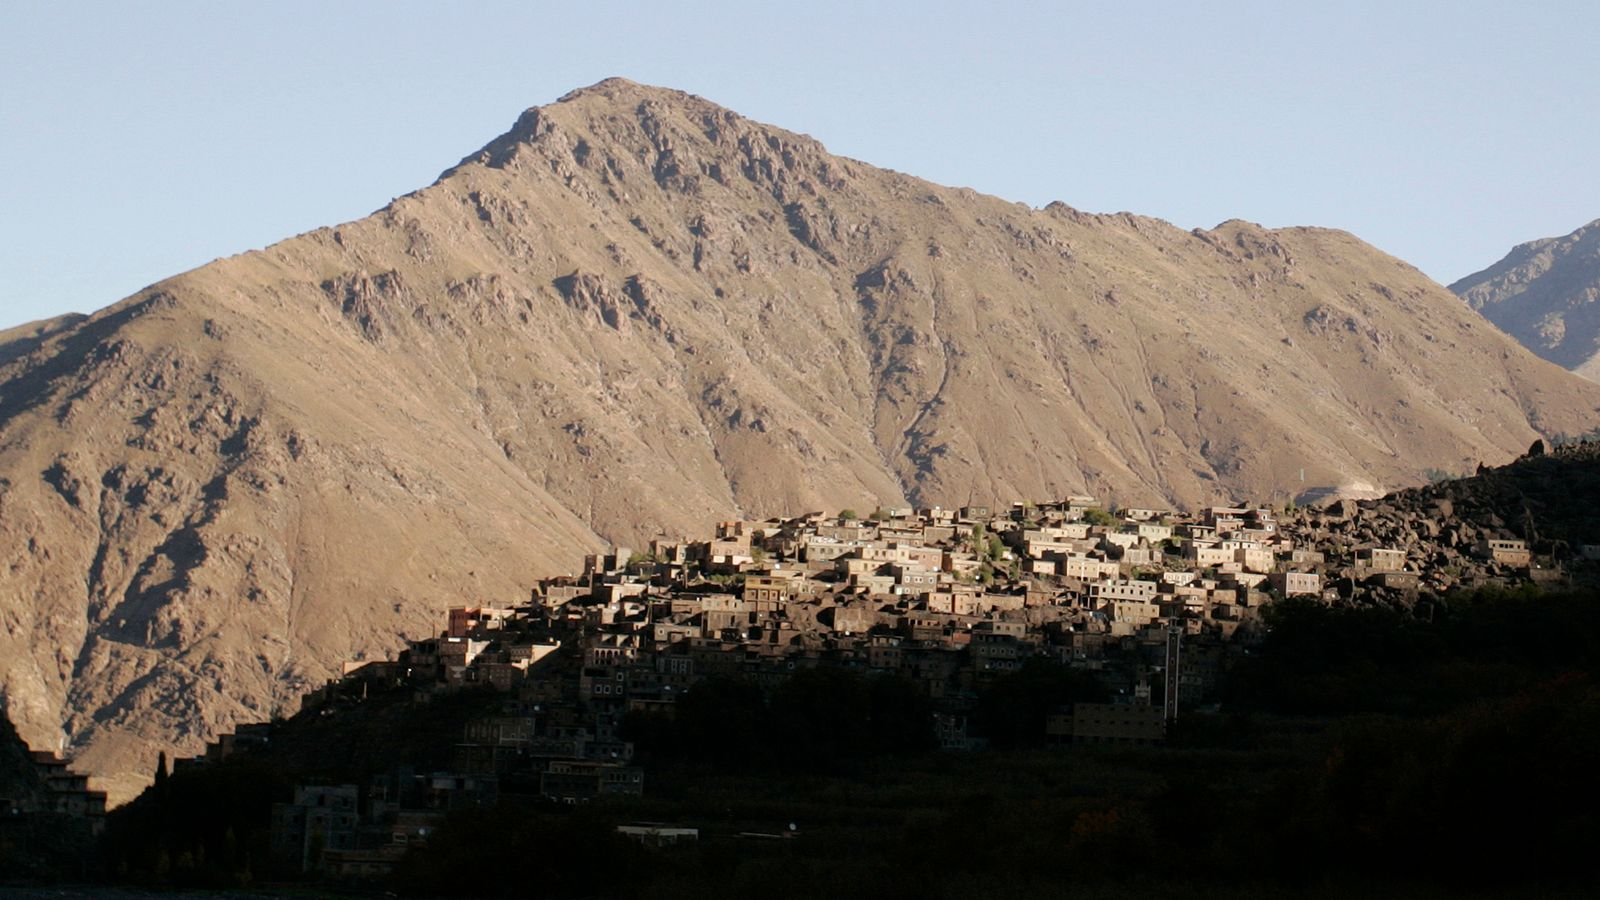 Bodies of two Scandinavian women found in Morocco